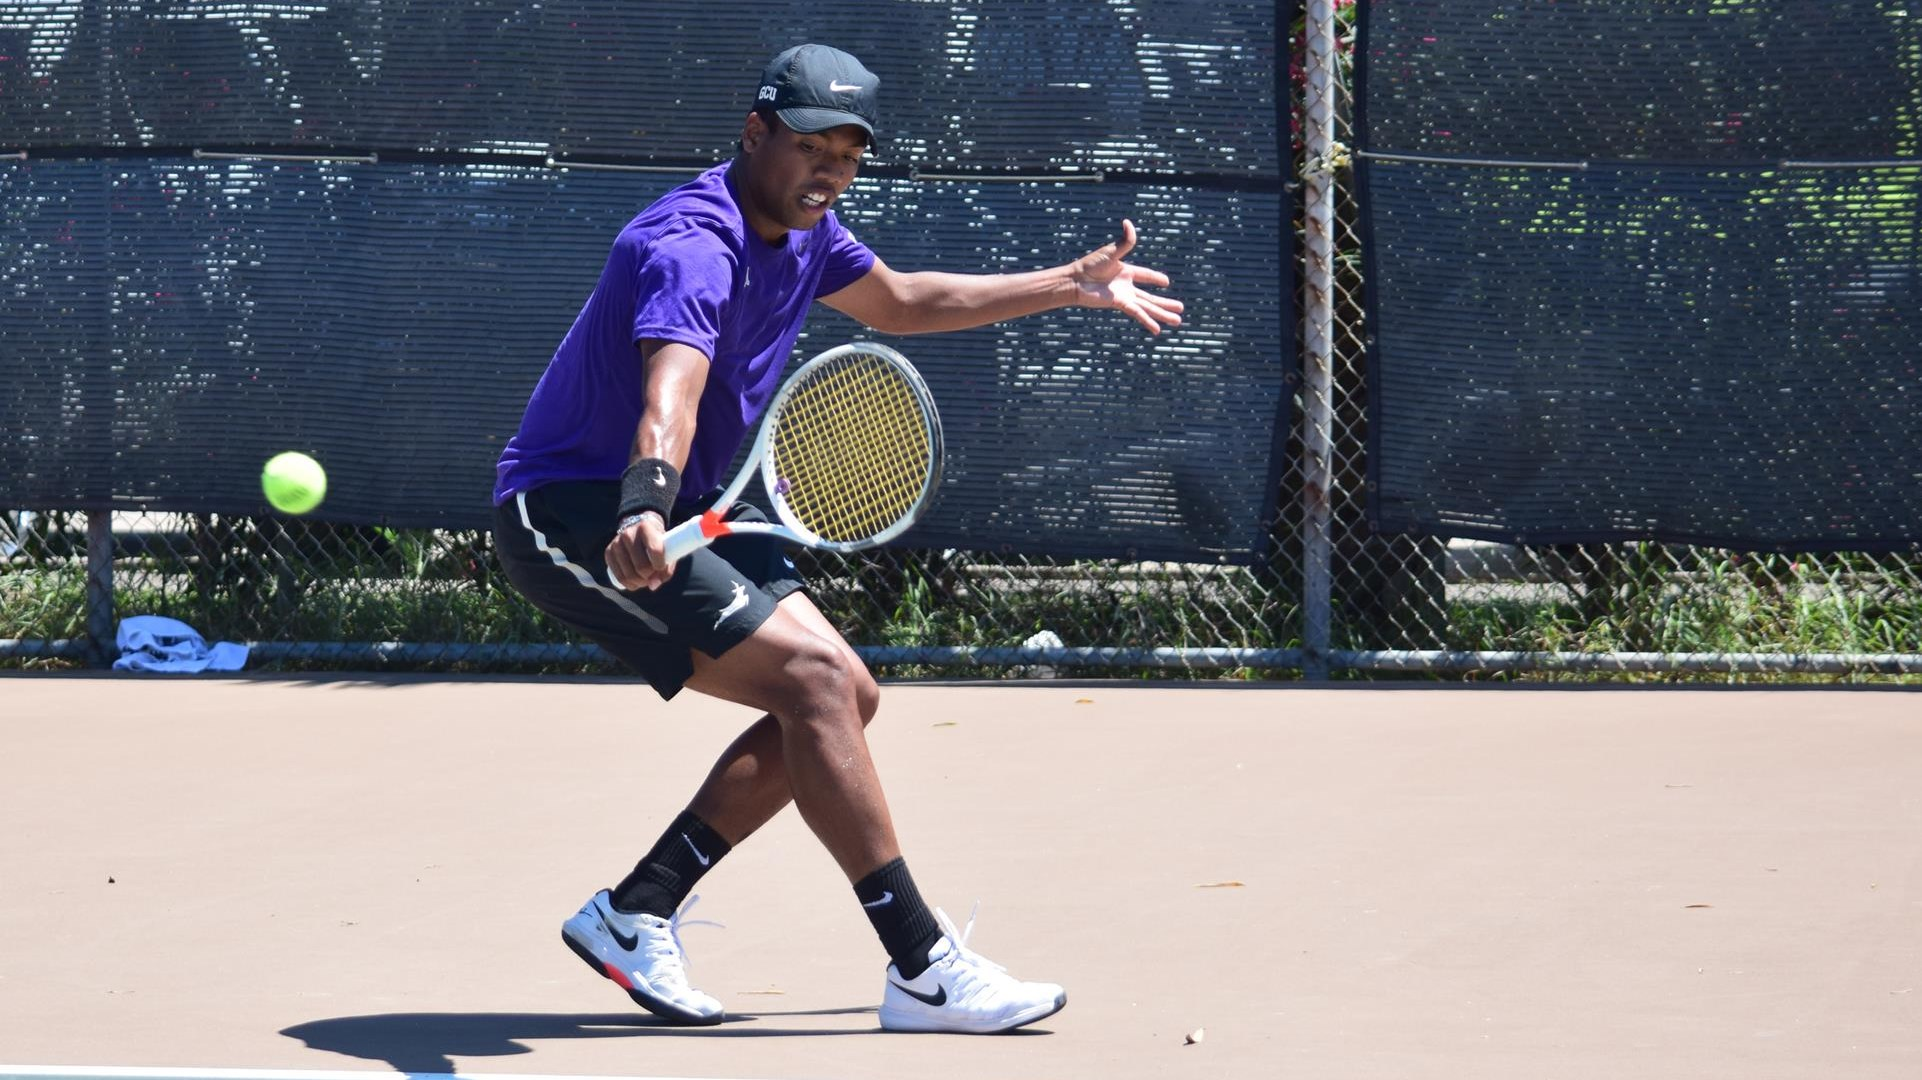 Wack Sport Tennis De Table Men S Tennis Grand Canyon University Athletics